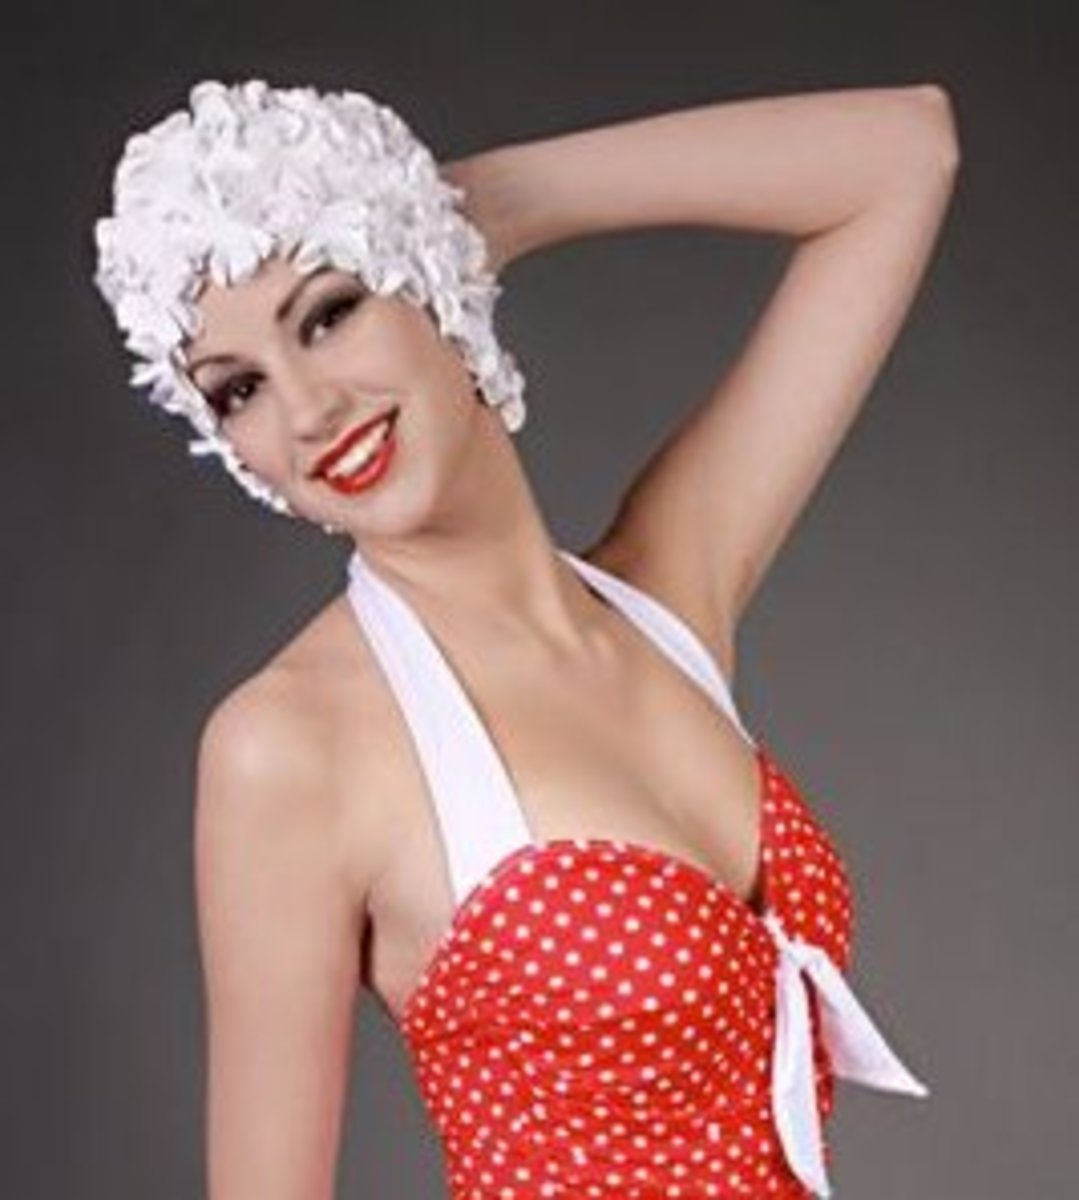 swim cap in white with model in red bathing suit